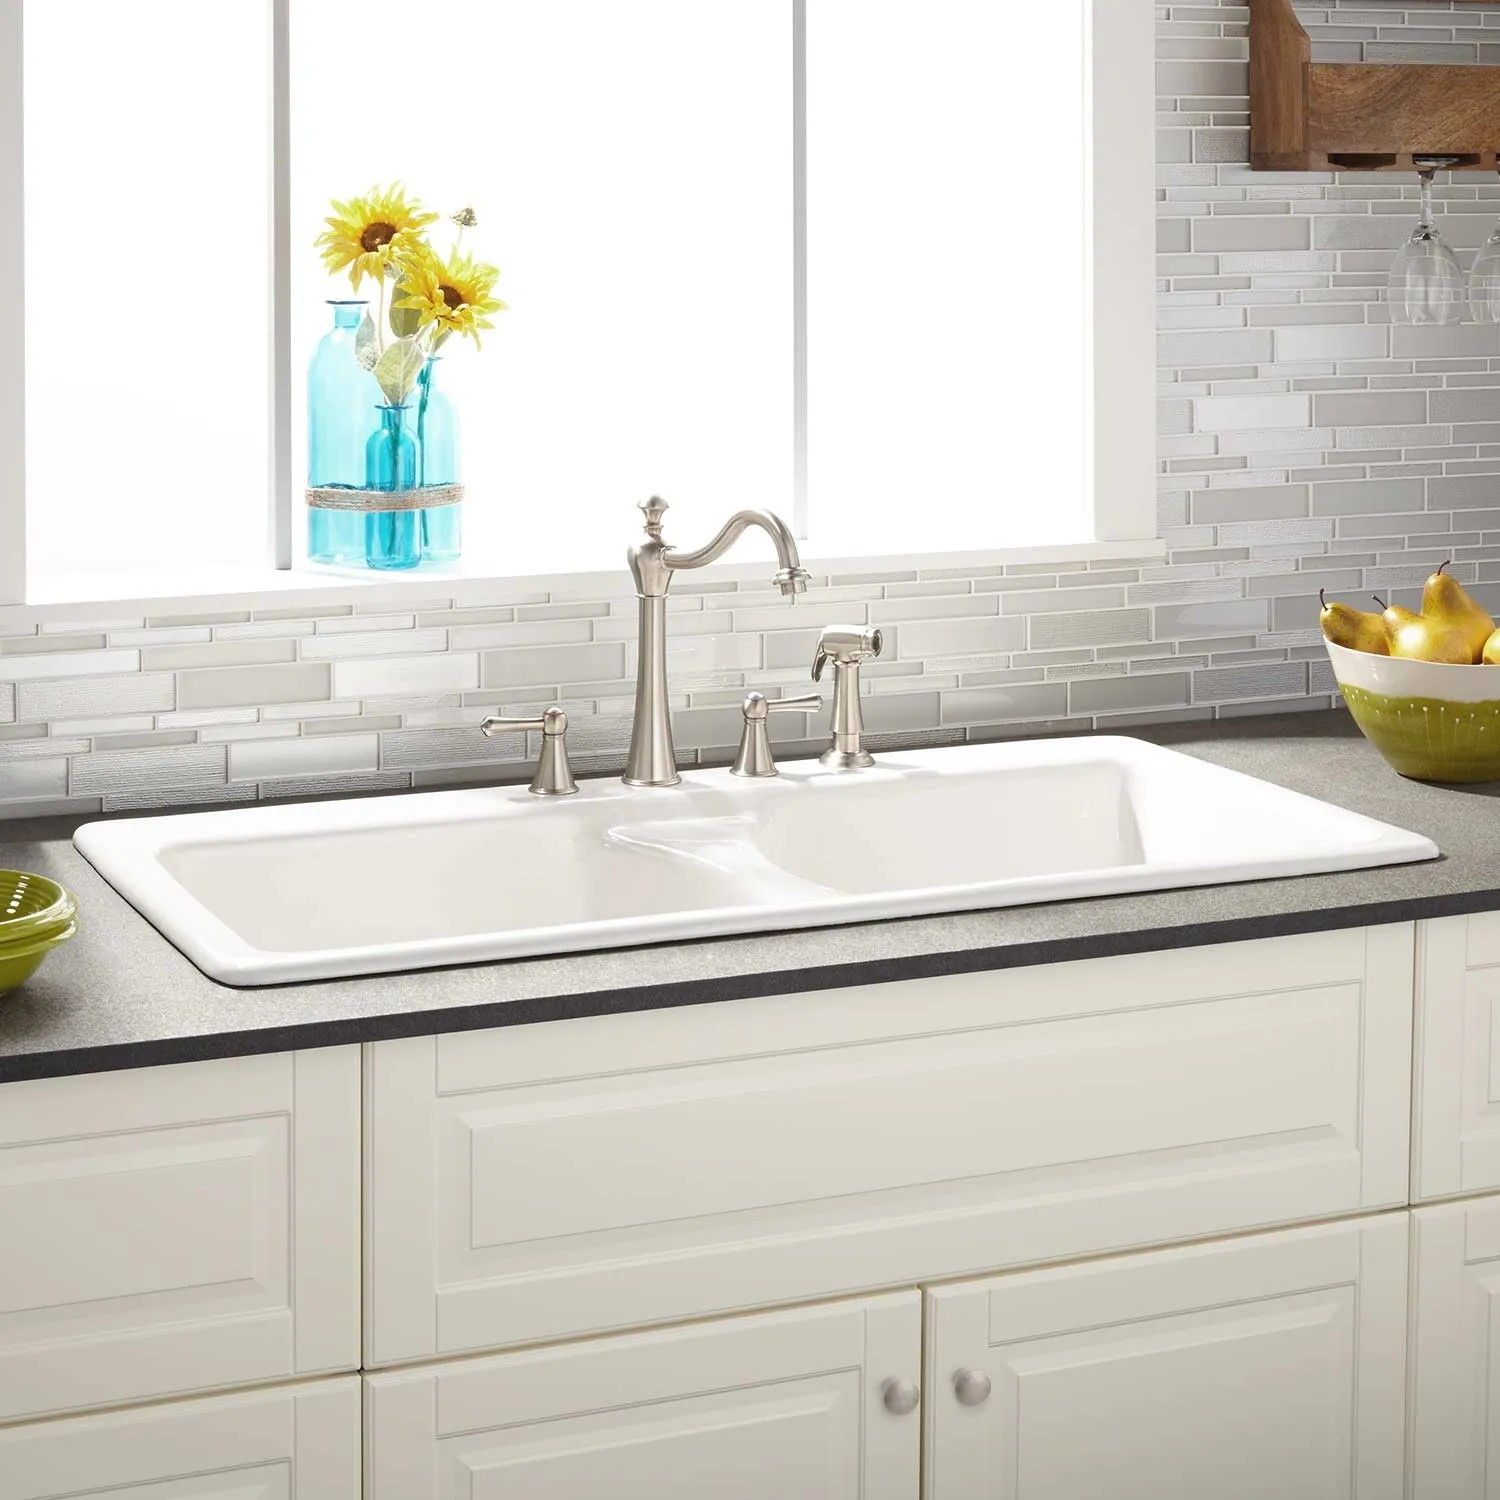 470175 43 double bowl cast iron drop in kitchen sink 8 inch widespread white